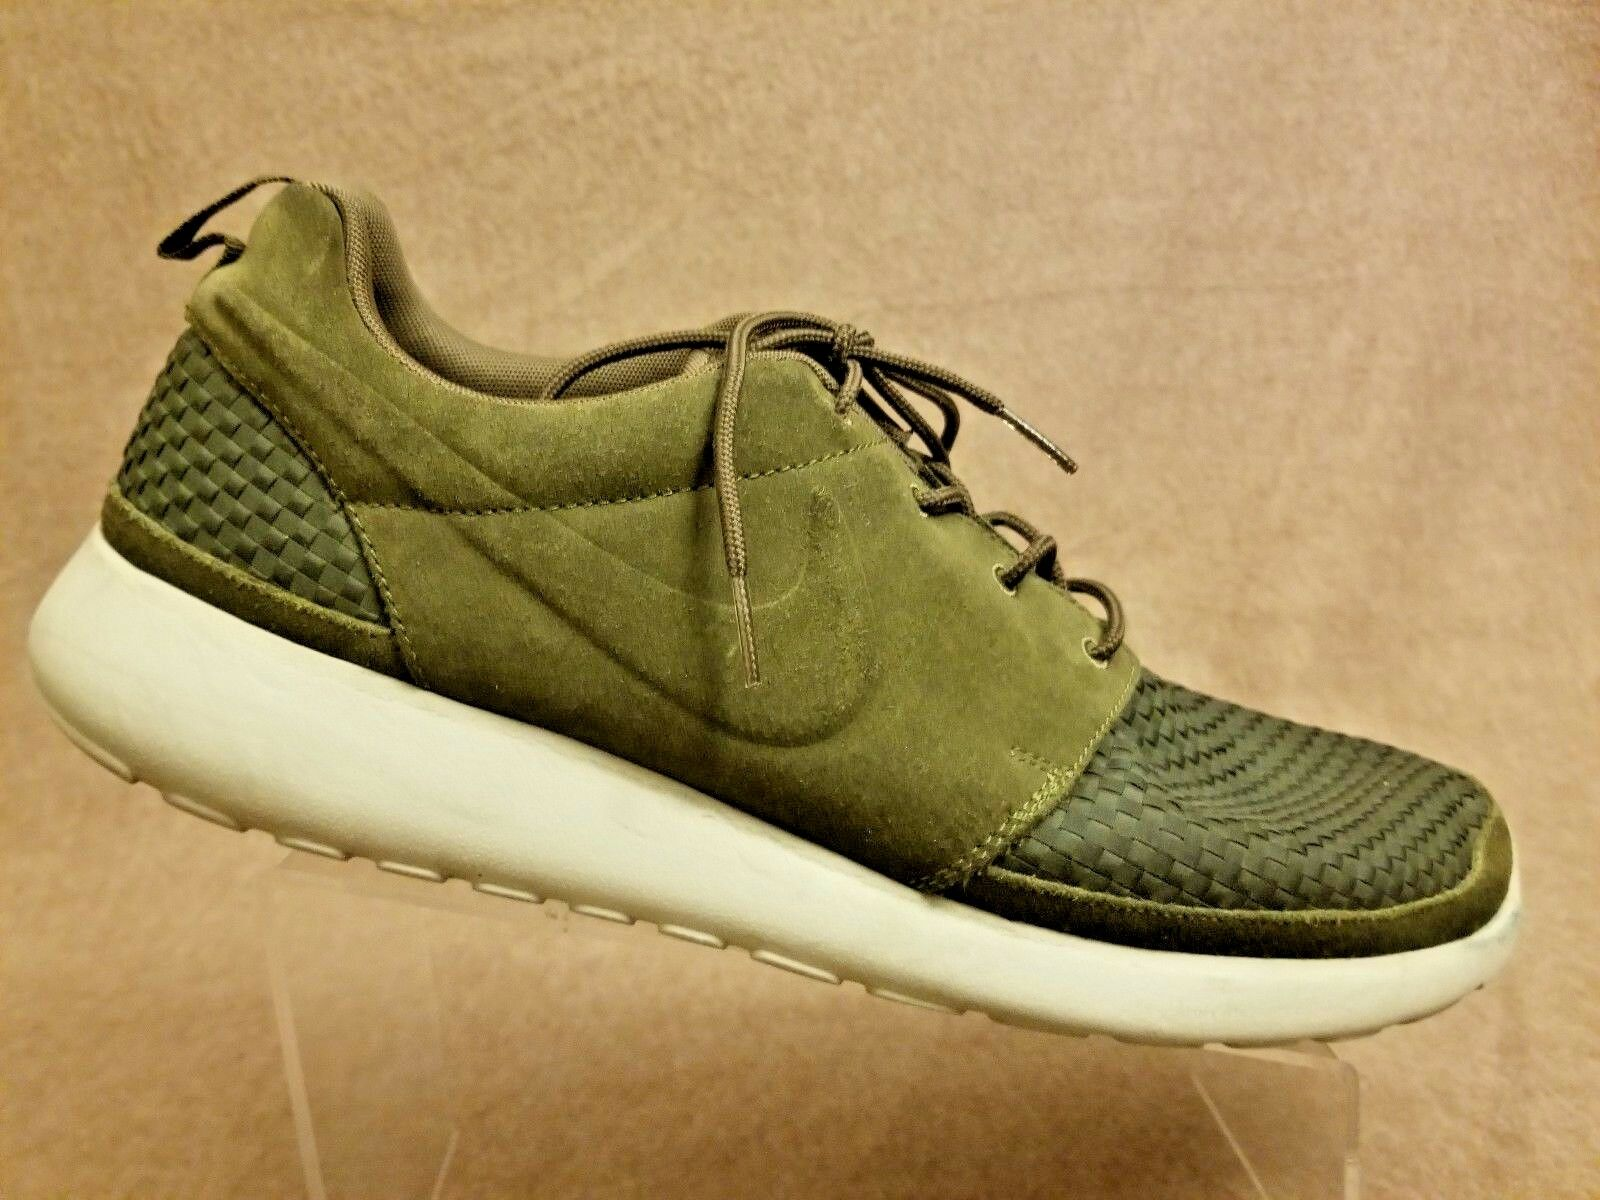 Nike Woven Roshe Run Olive Suede Green Flyknit 555602-332 Men Sport Shoes Sz 15 Special limited time